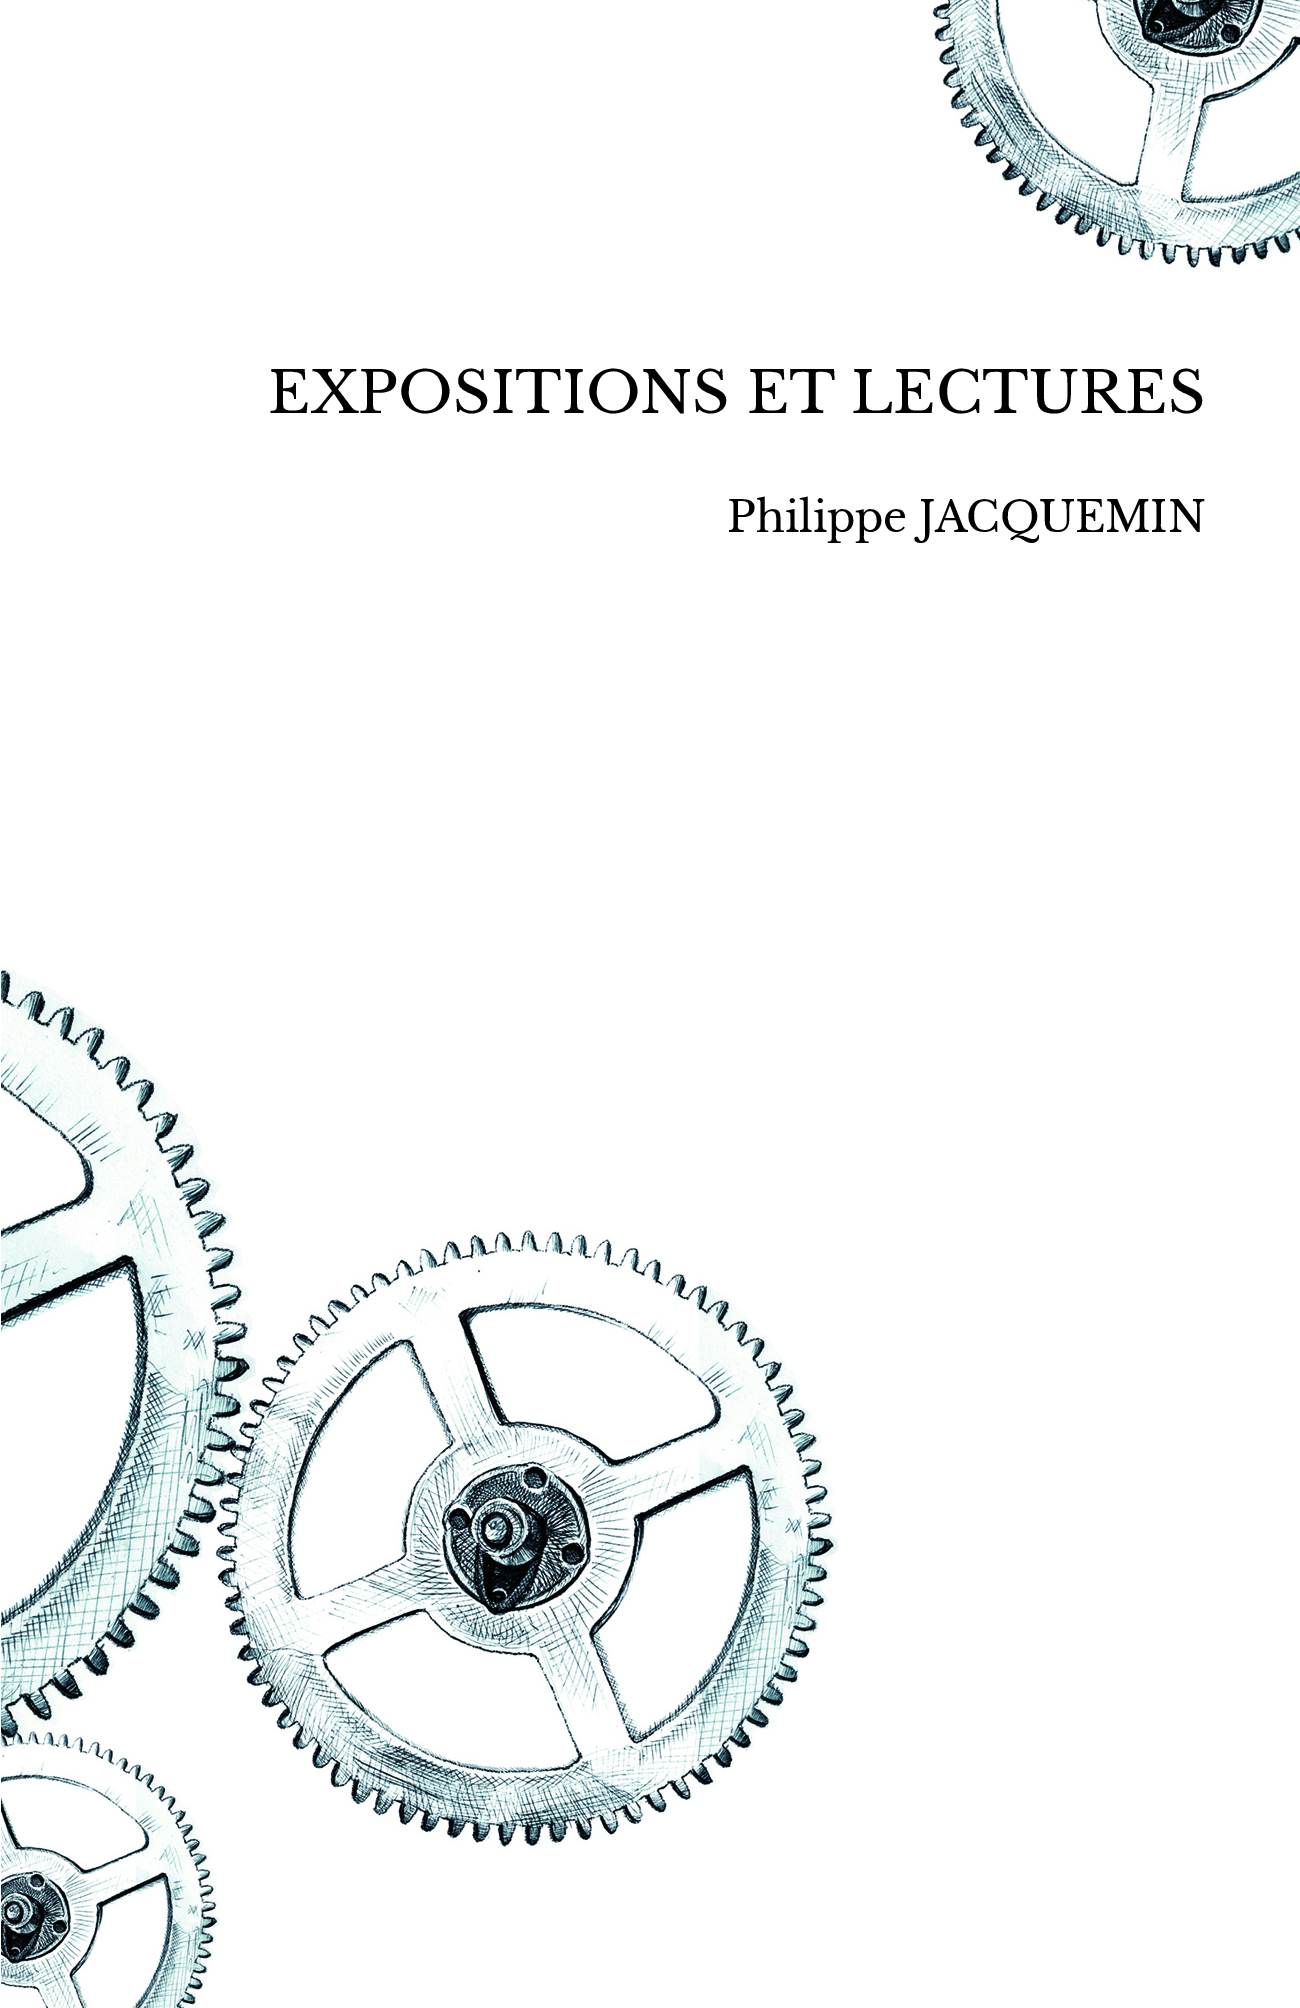 EXPOSITIONS ET LECTURES